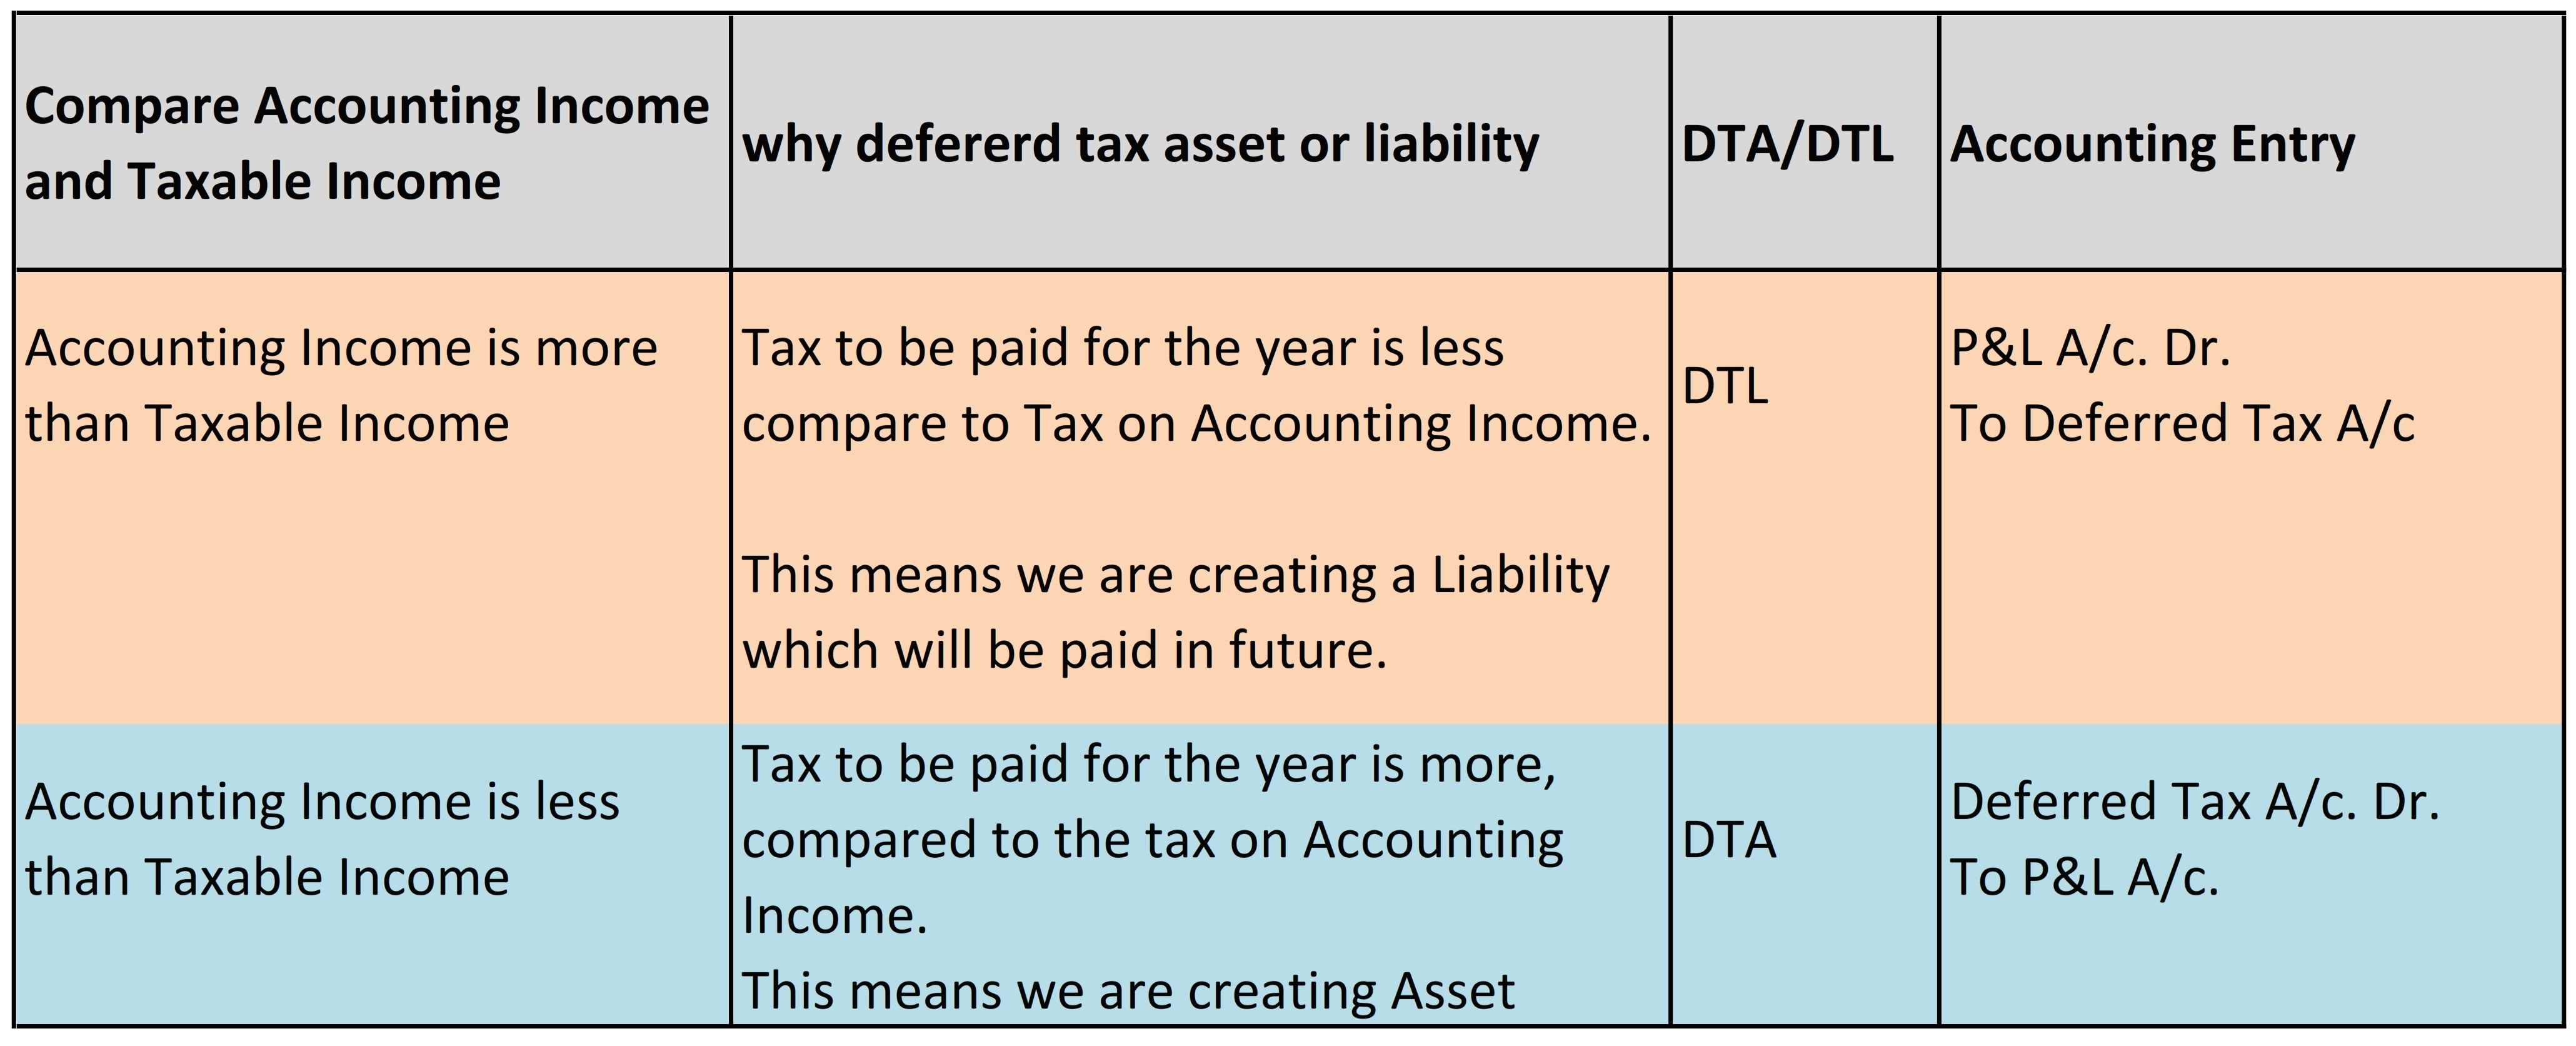 Deferred tax assets: the nature and main principles of accounting 64